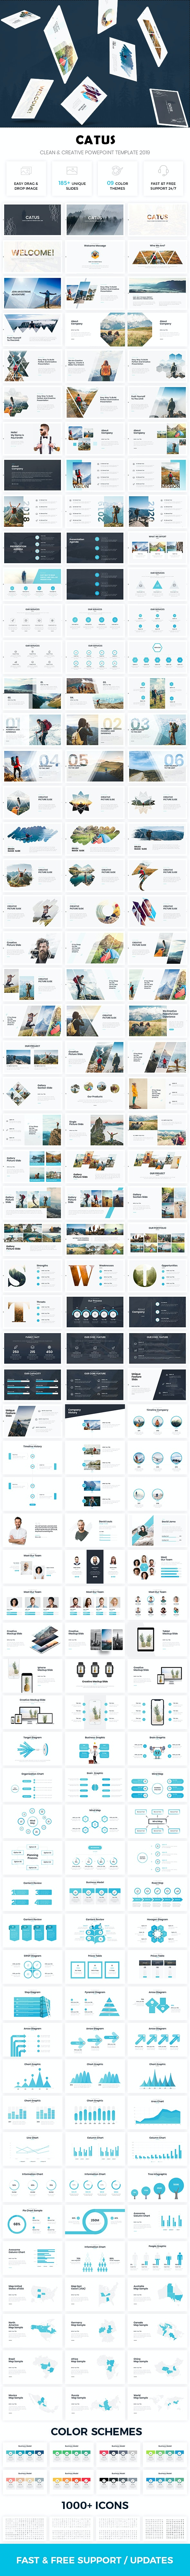 Catus - Clean & Creative Powerpoint Template 2019 - Creative PowerPoint Templates